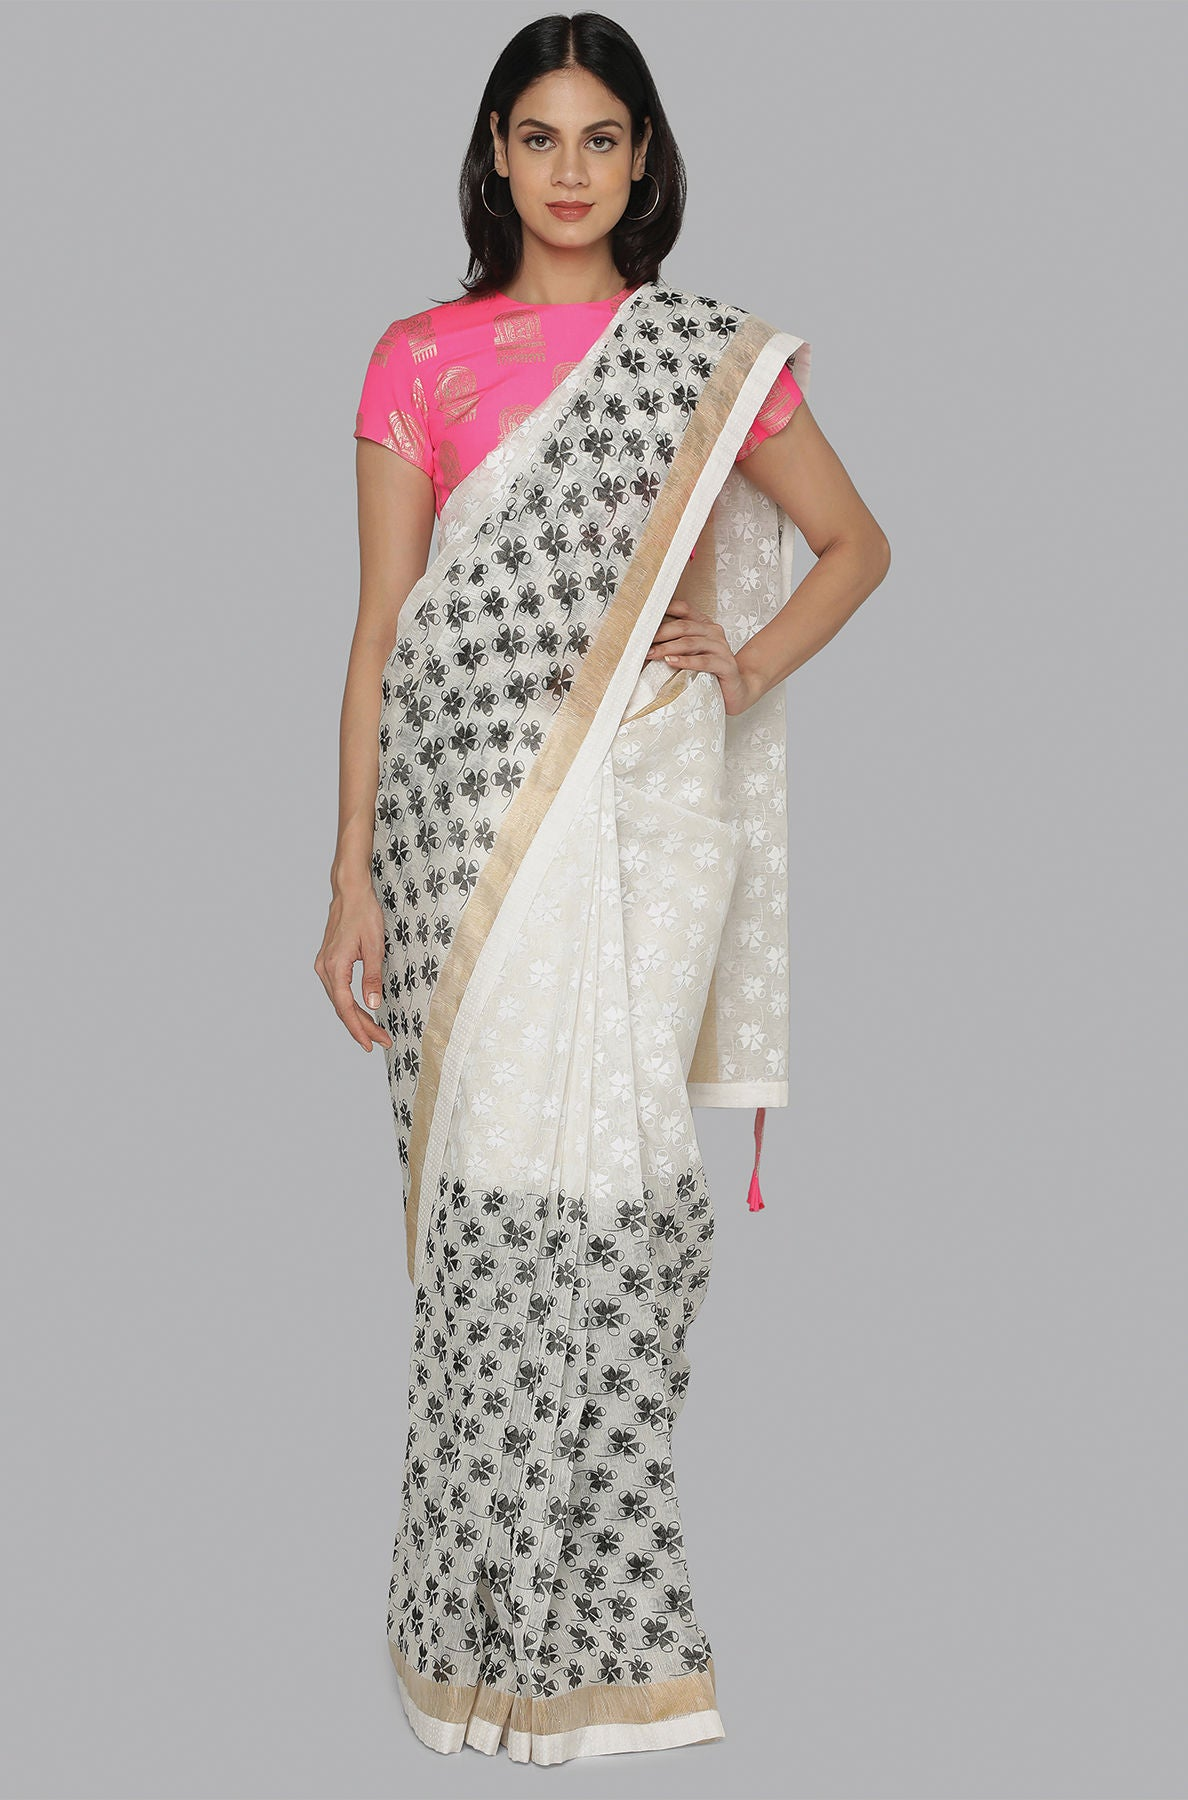 WHITE & BLACK PETAL PRINTED HALF N HALF BANARSI SARI WITH CANDY PINK COMB BLOUSE PIECE - The Grand Trunk